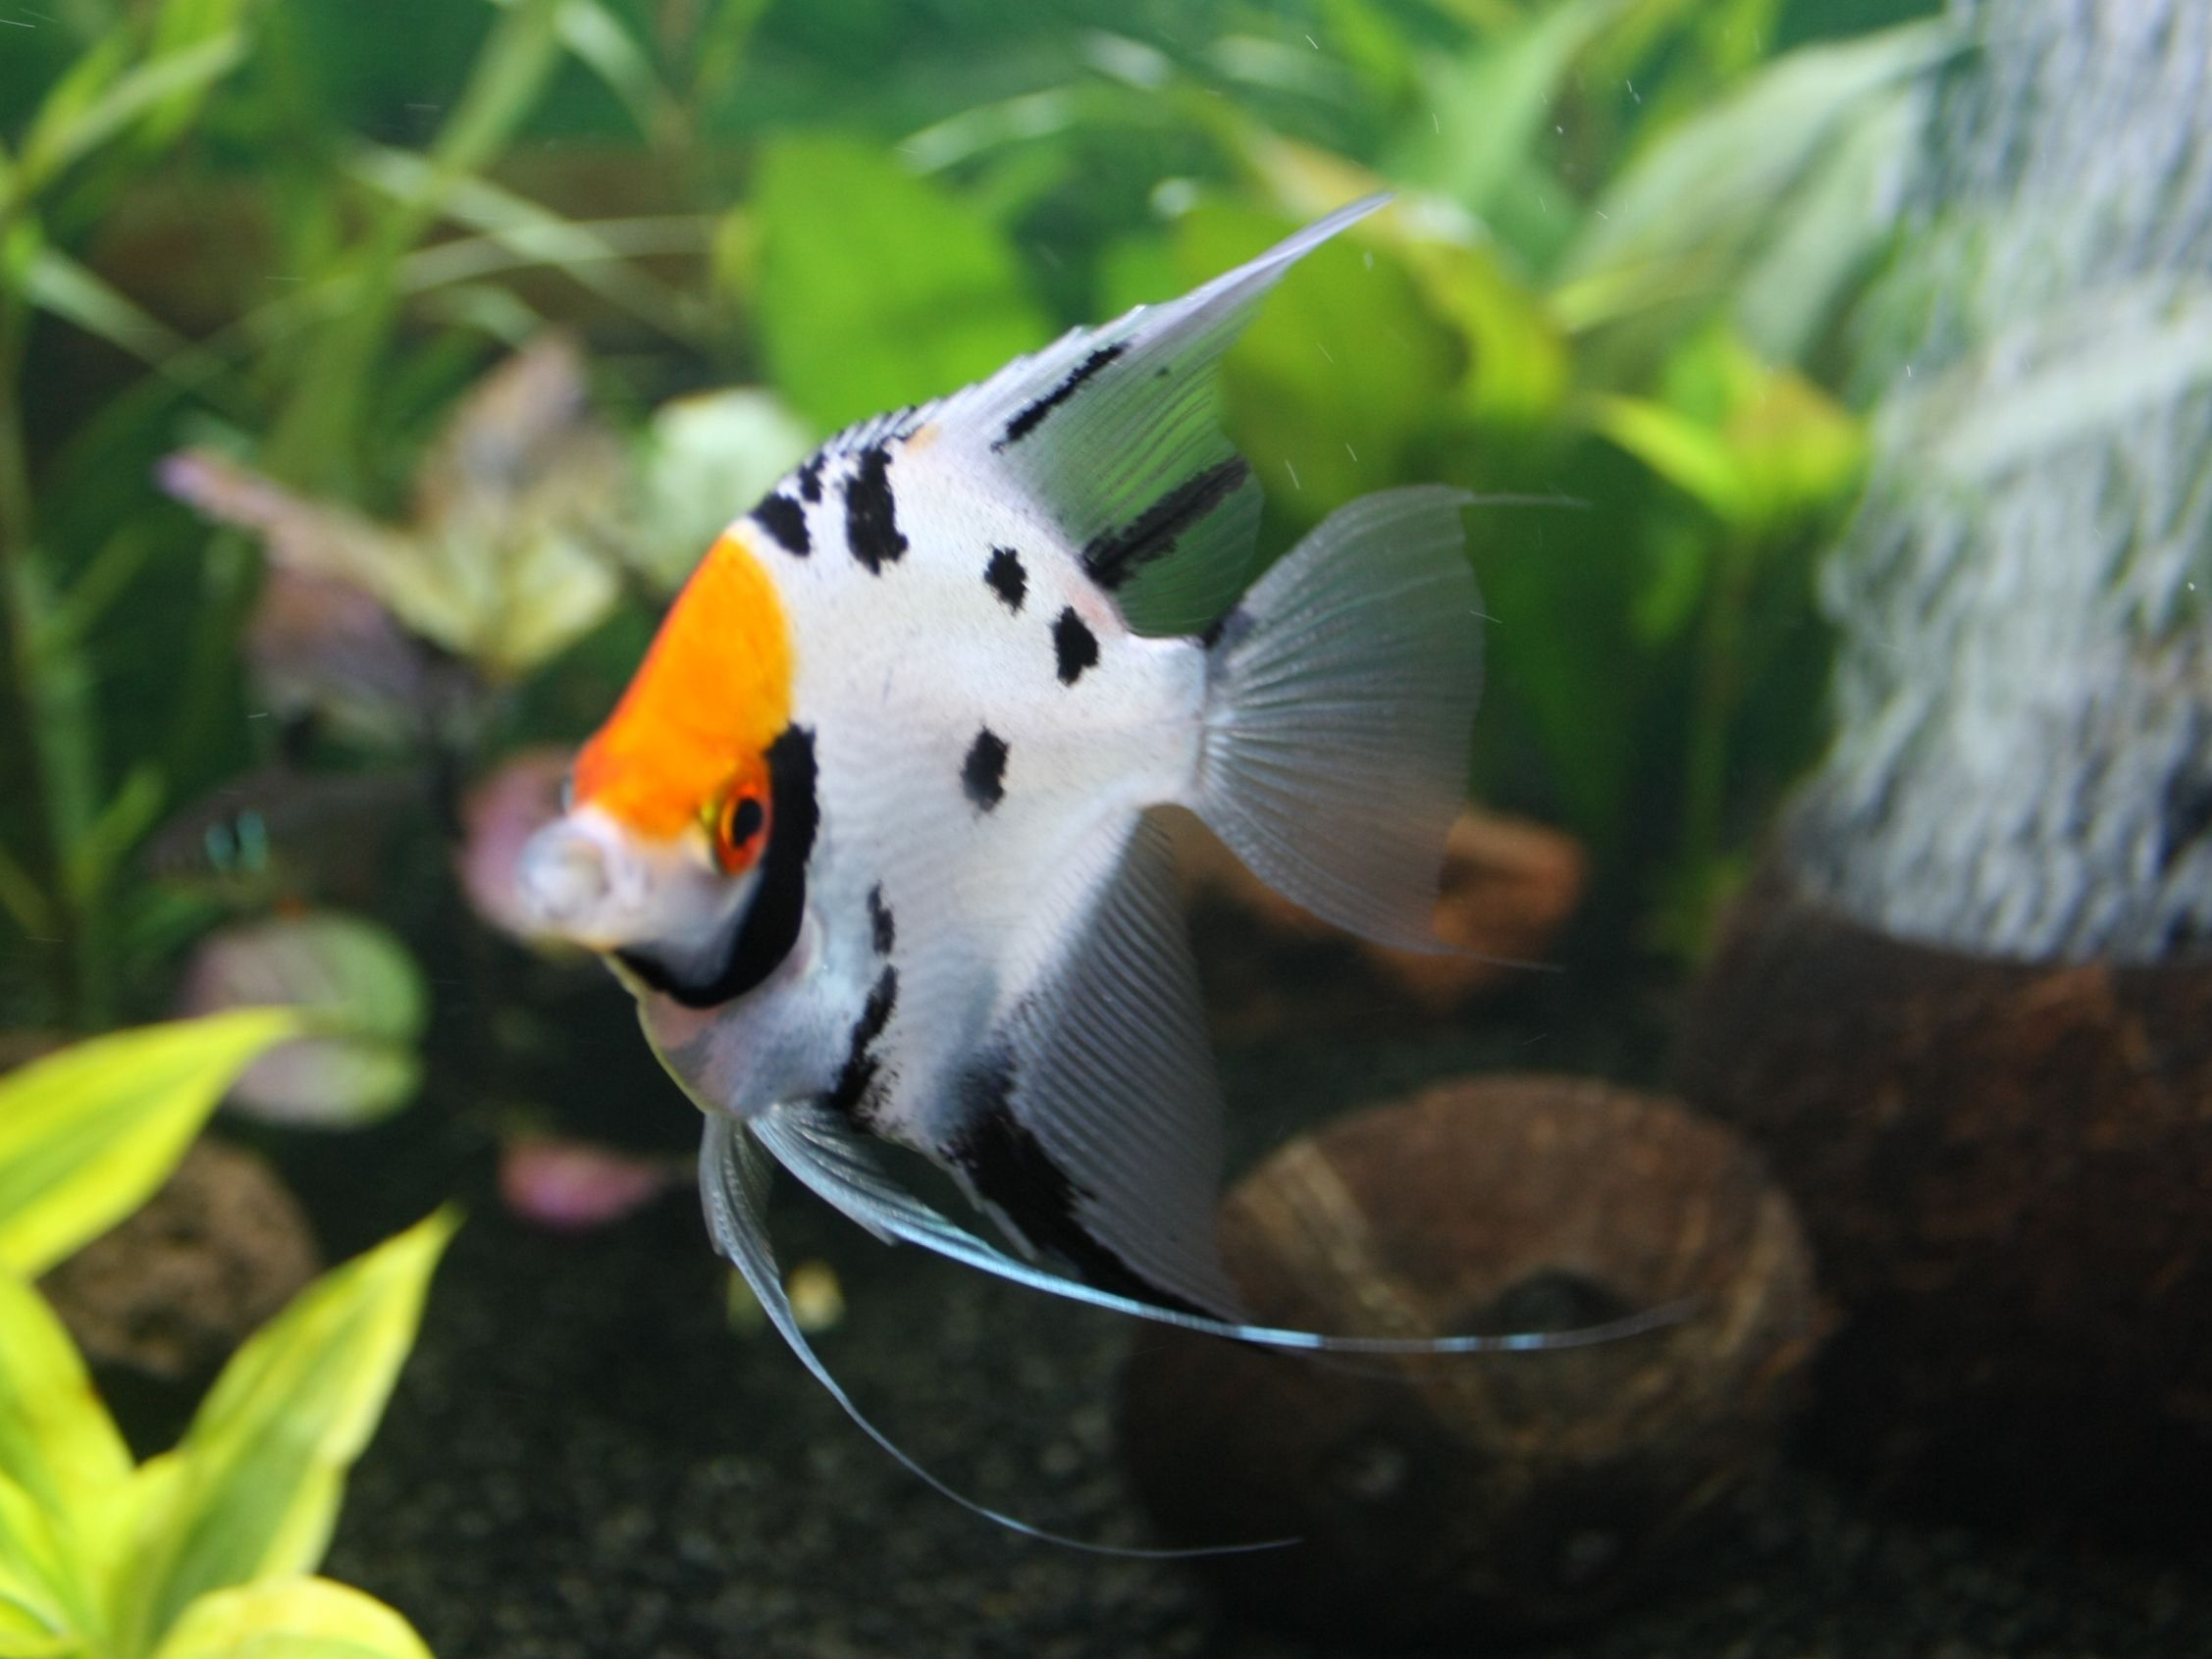 Freshwater aquarium fish angelfish - Fish Freshwater Aquarium